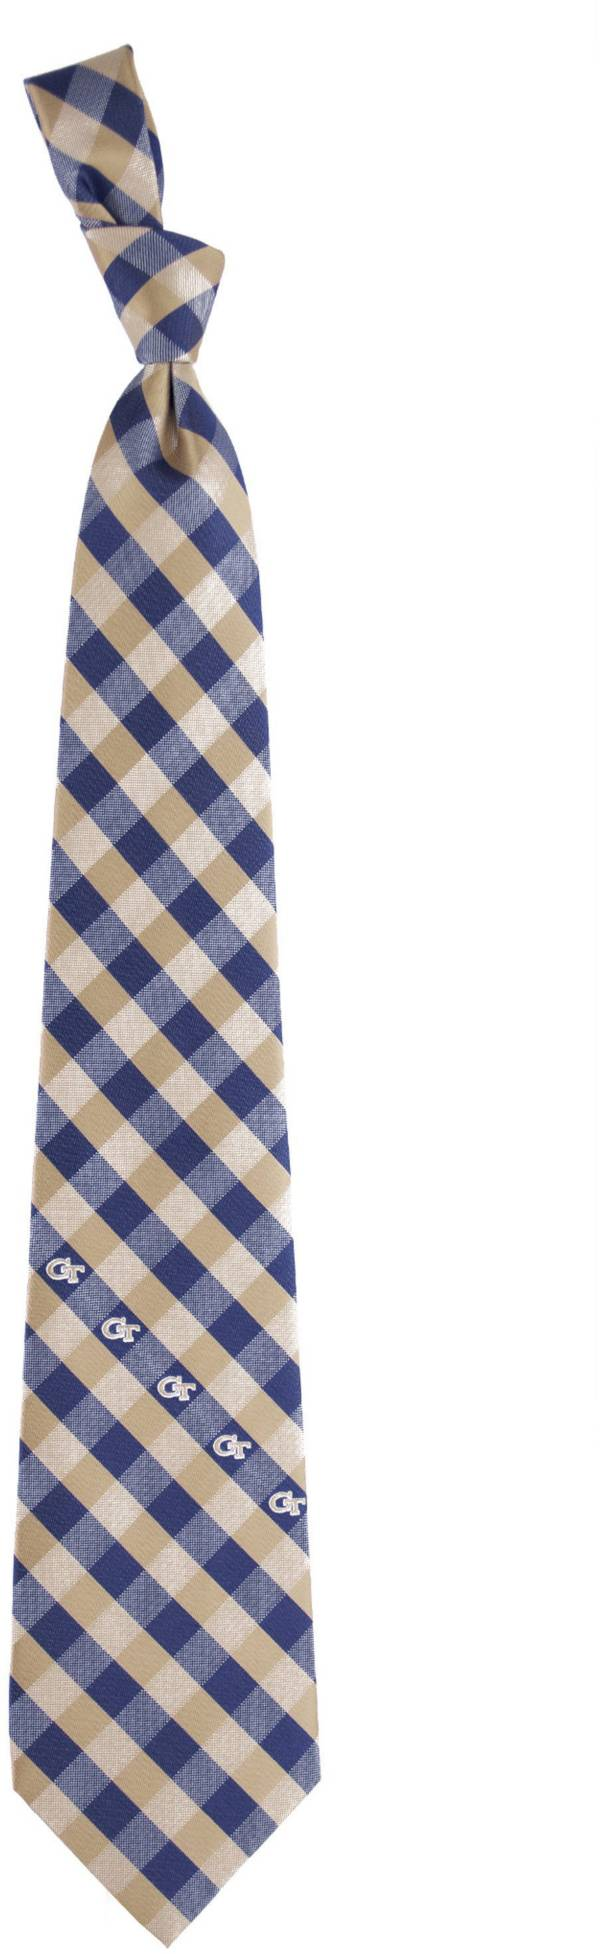 Eagles Wings Georgia Tech Yellow Jackets Check Necktie product image